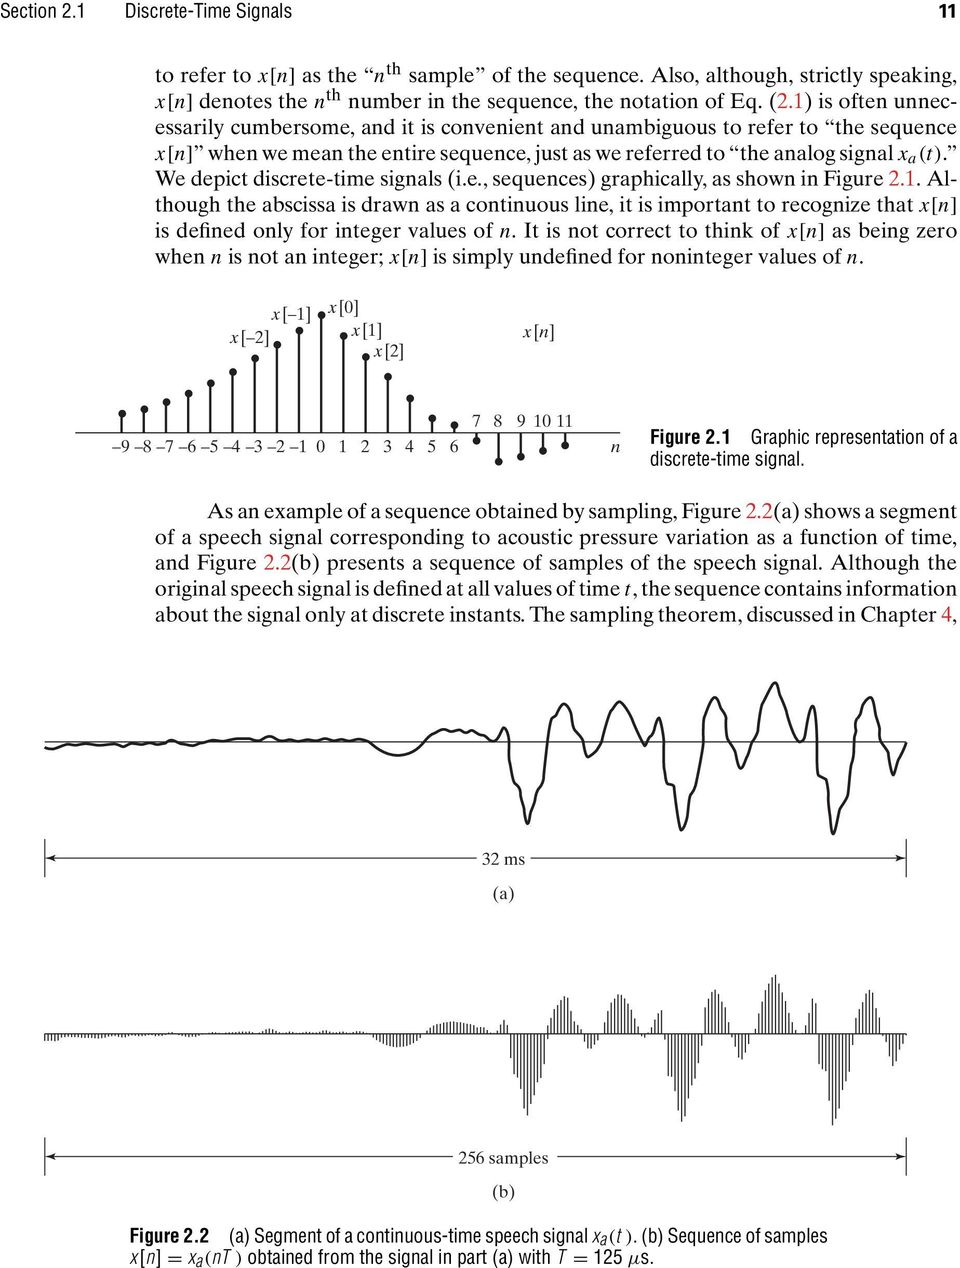 We depict discrete-time signals (i.e., sequences) graphically, as shown in Figure 2.